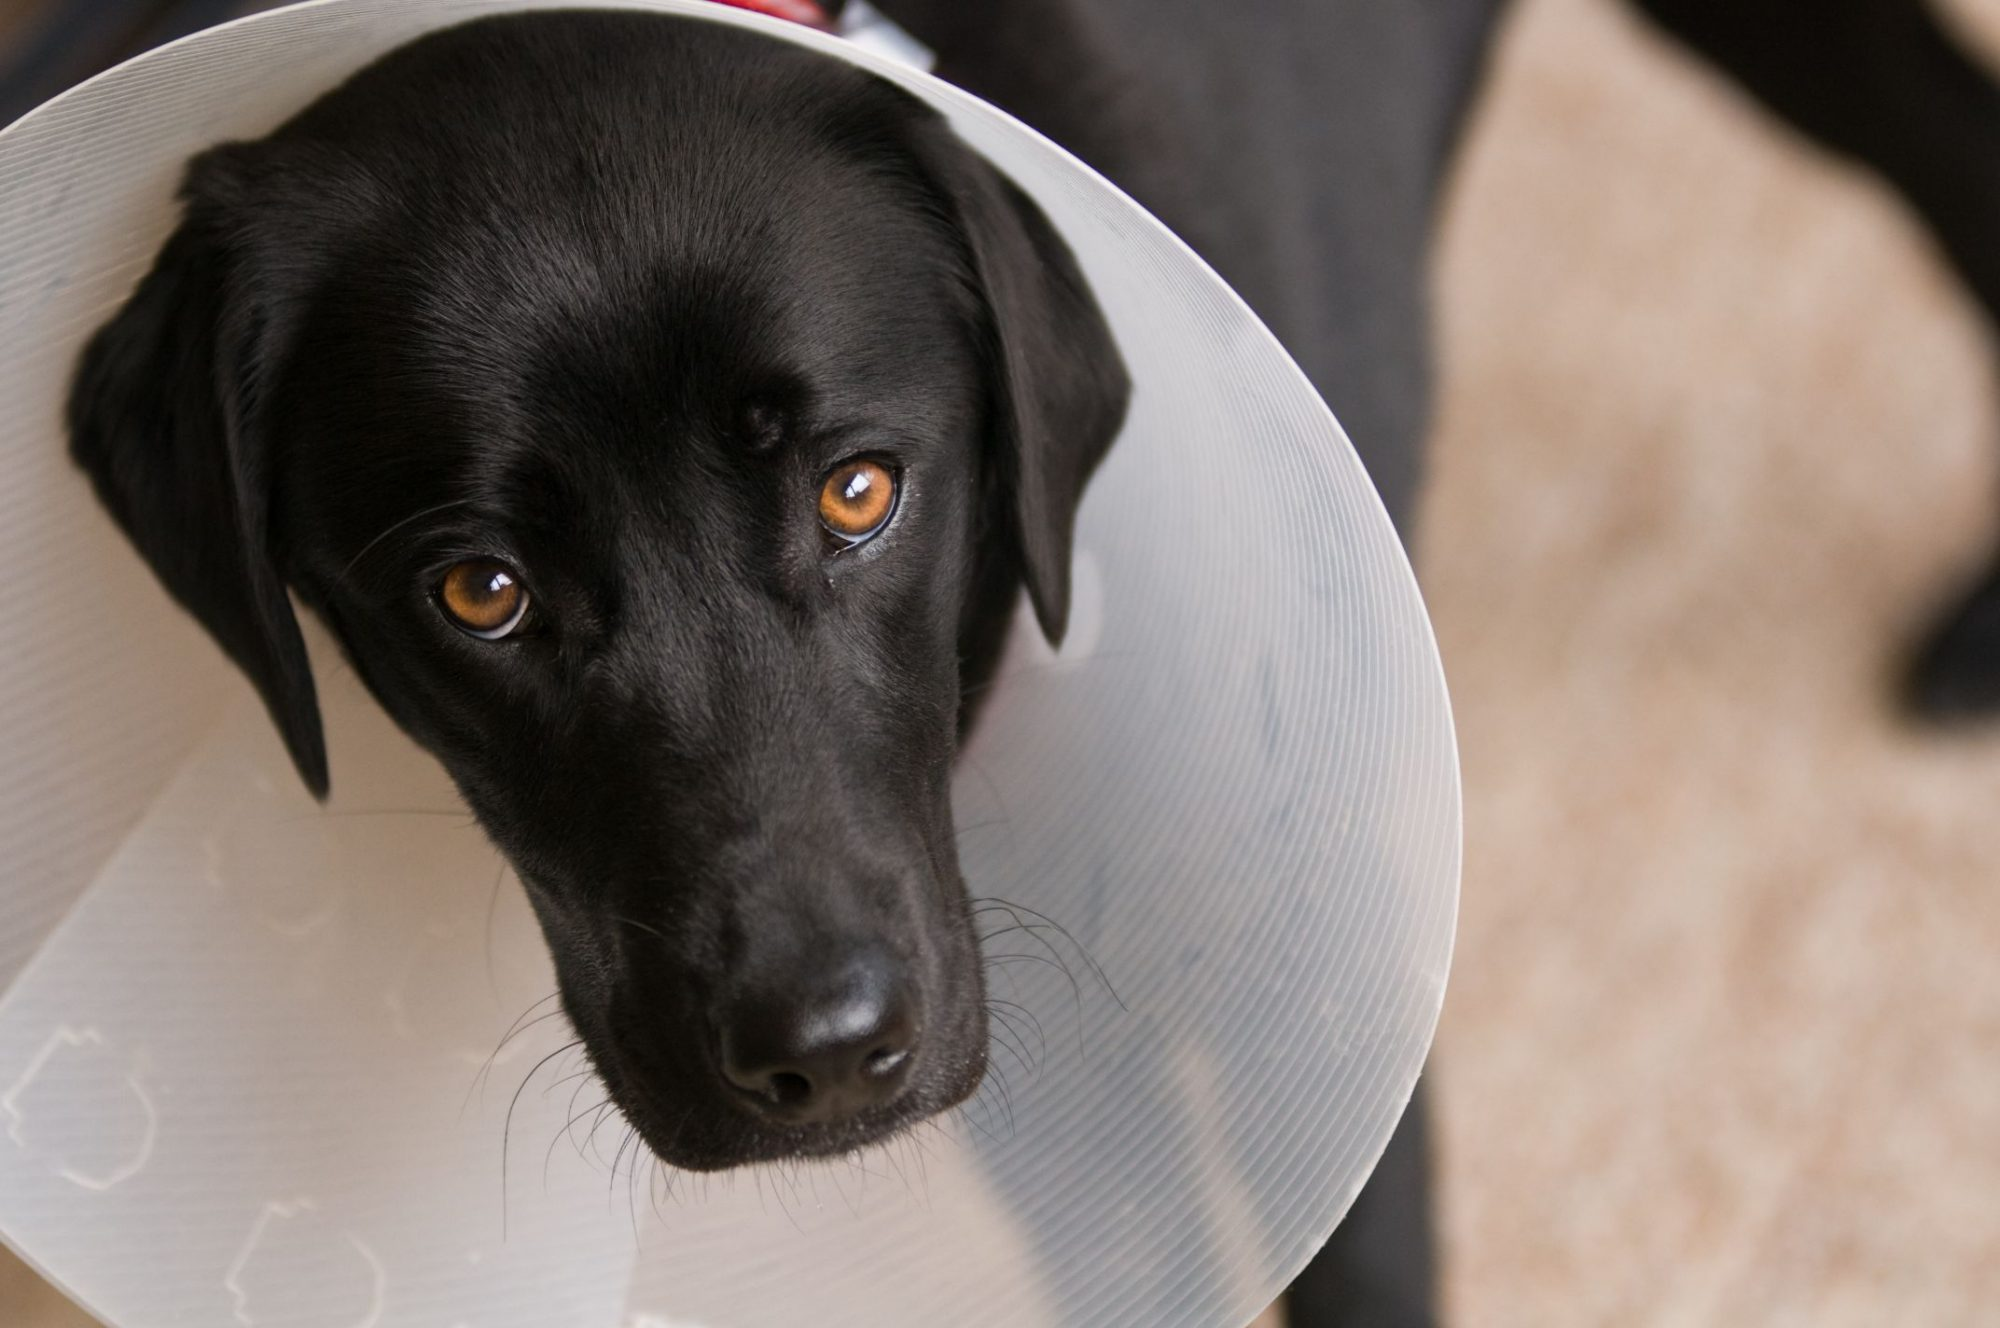 A black dog in a cone.